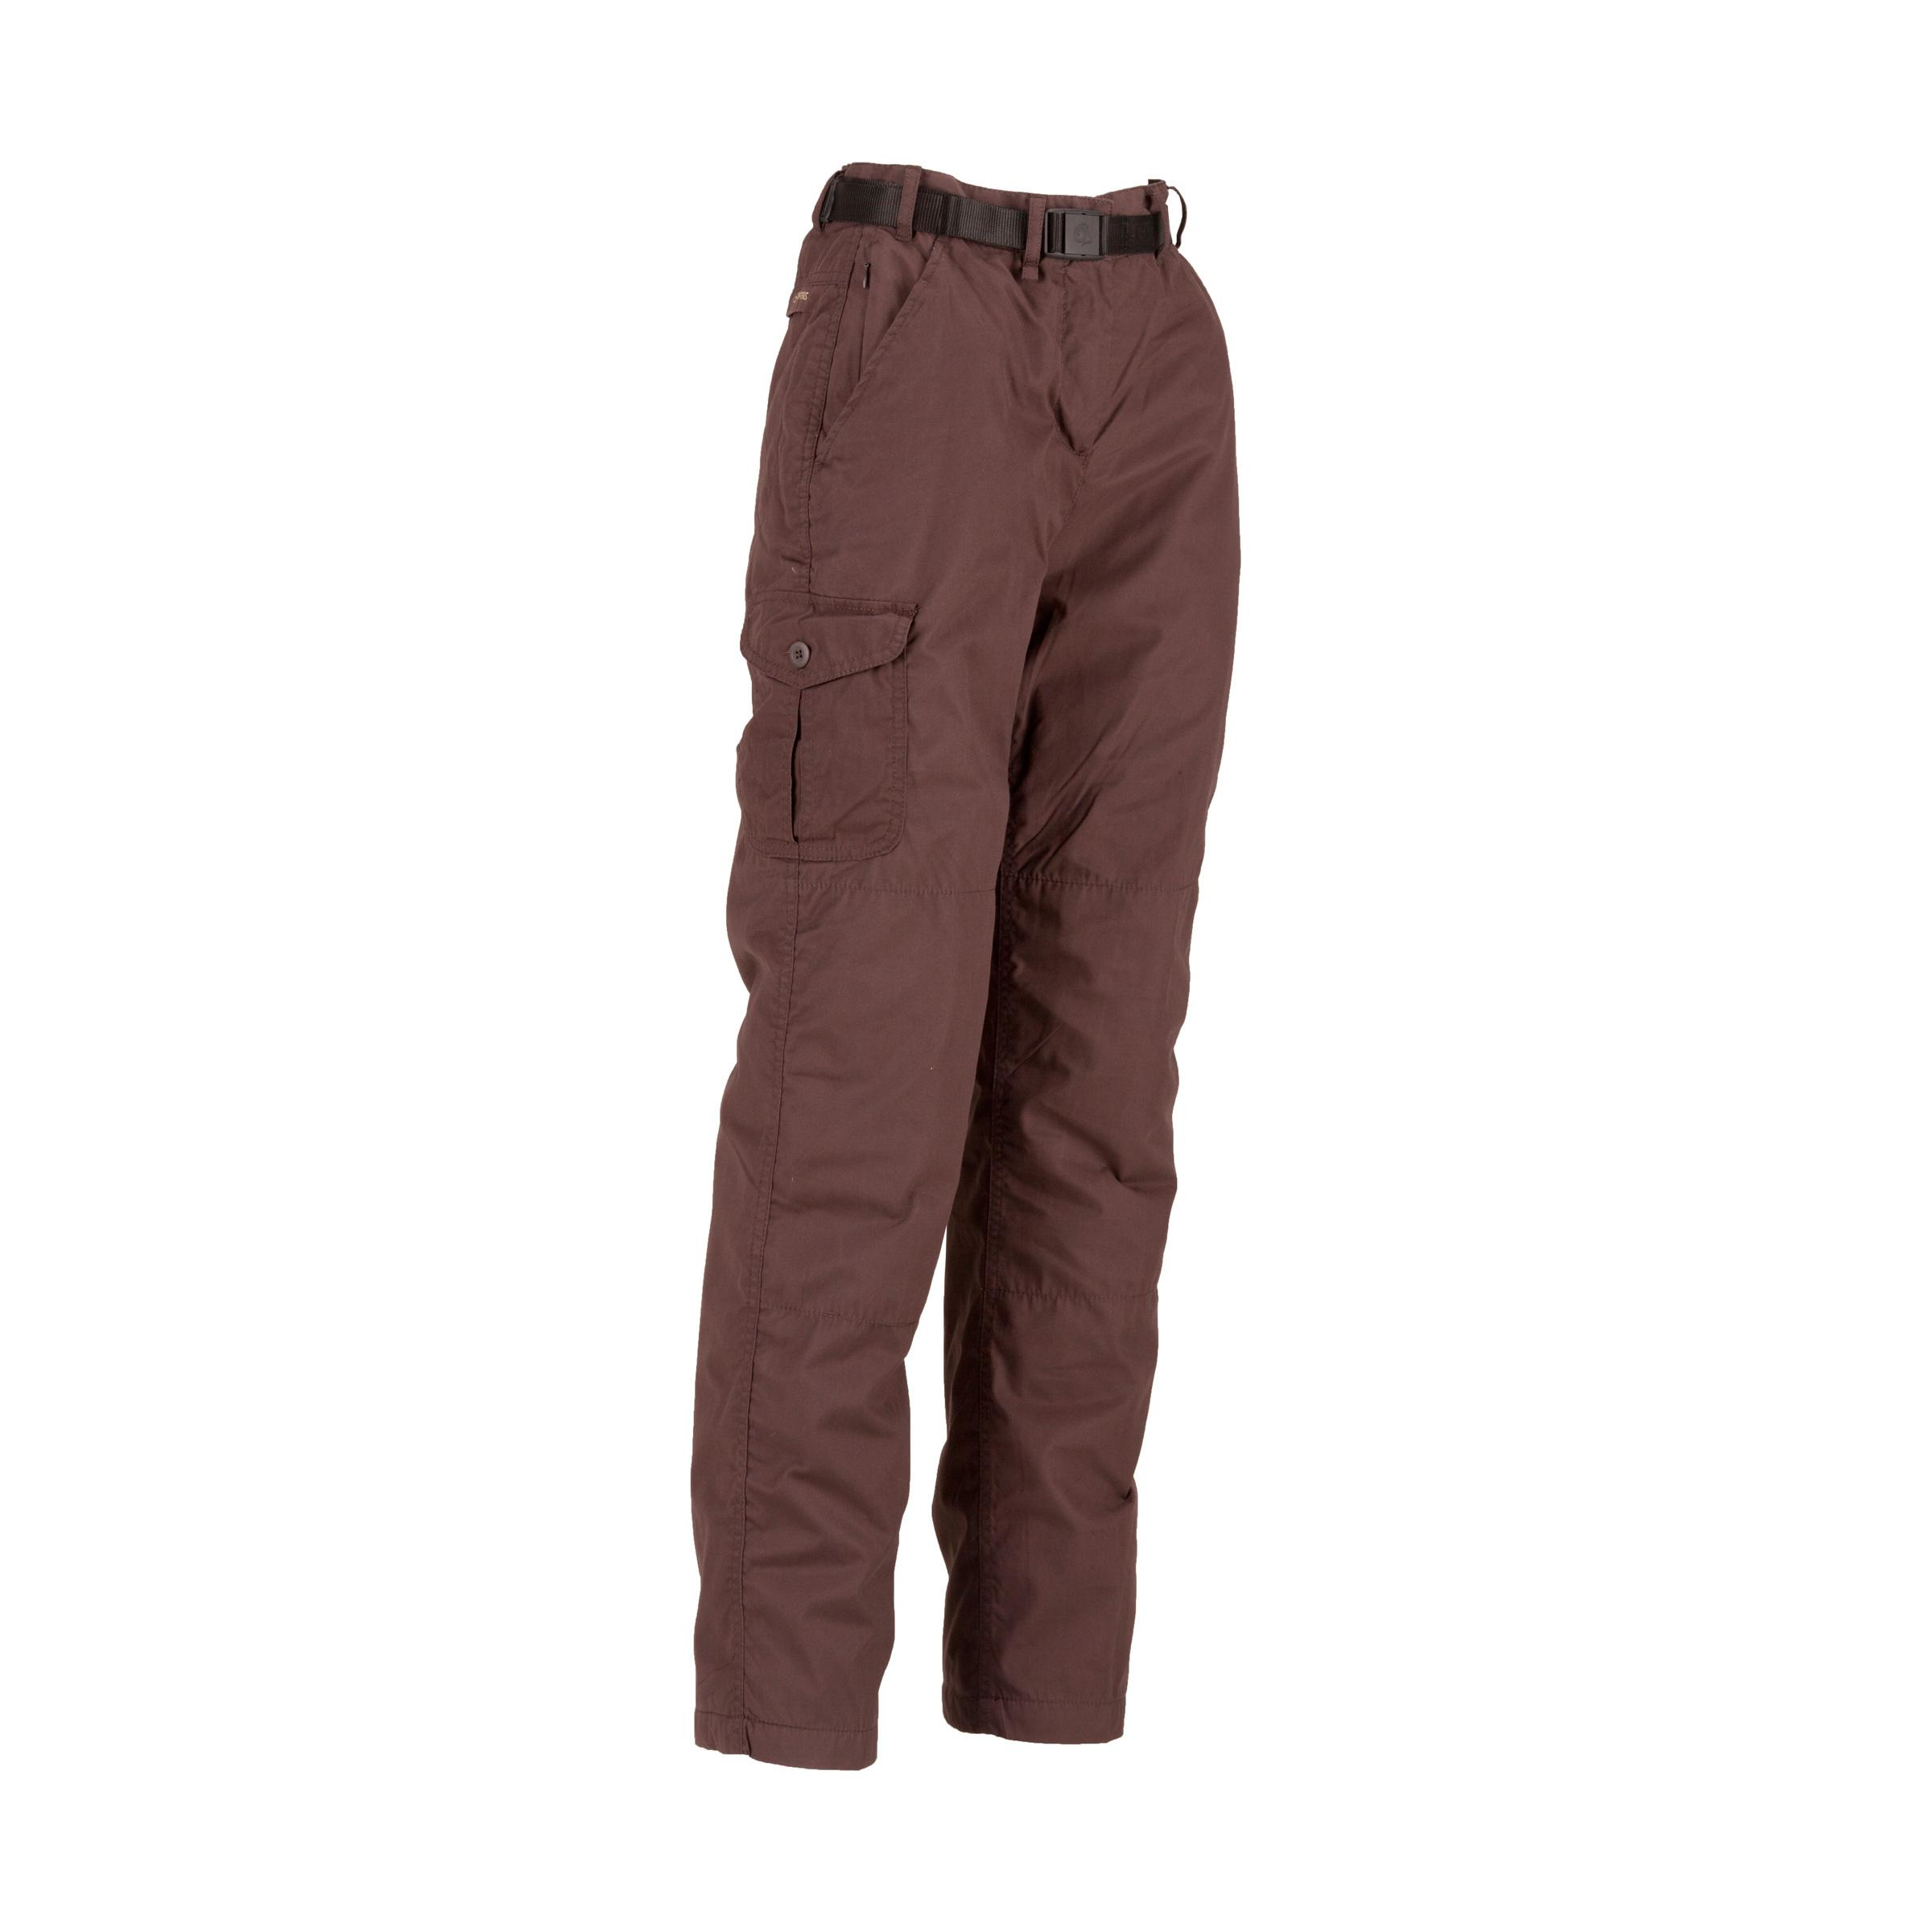 Craghoppers Womens Kiwi Lined Trousers Brown